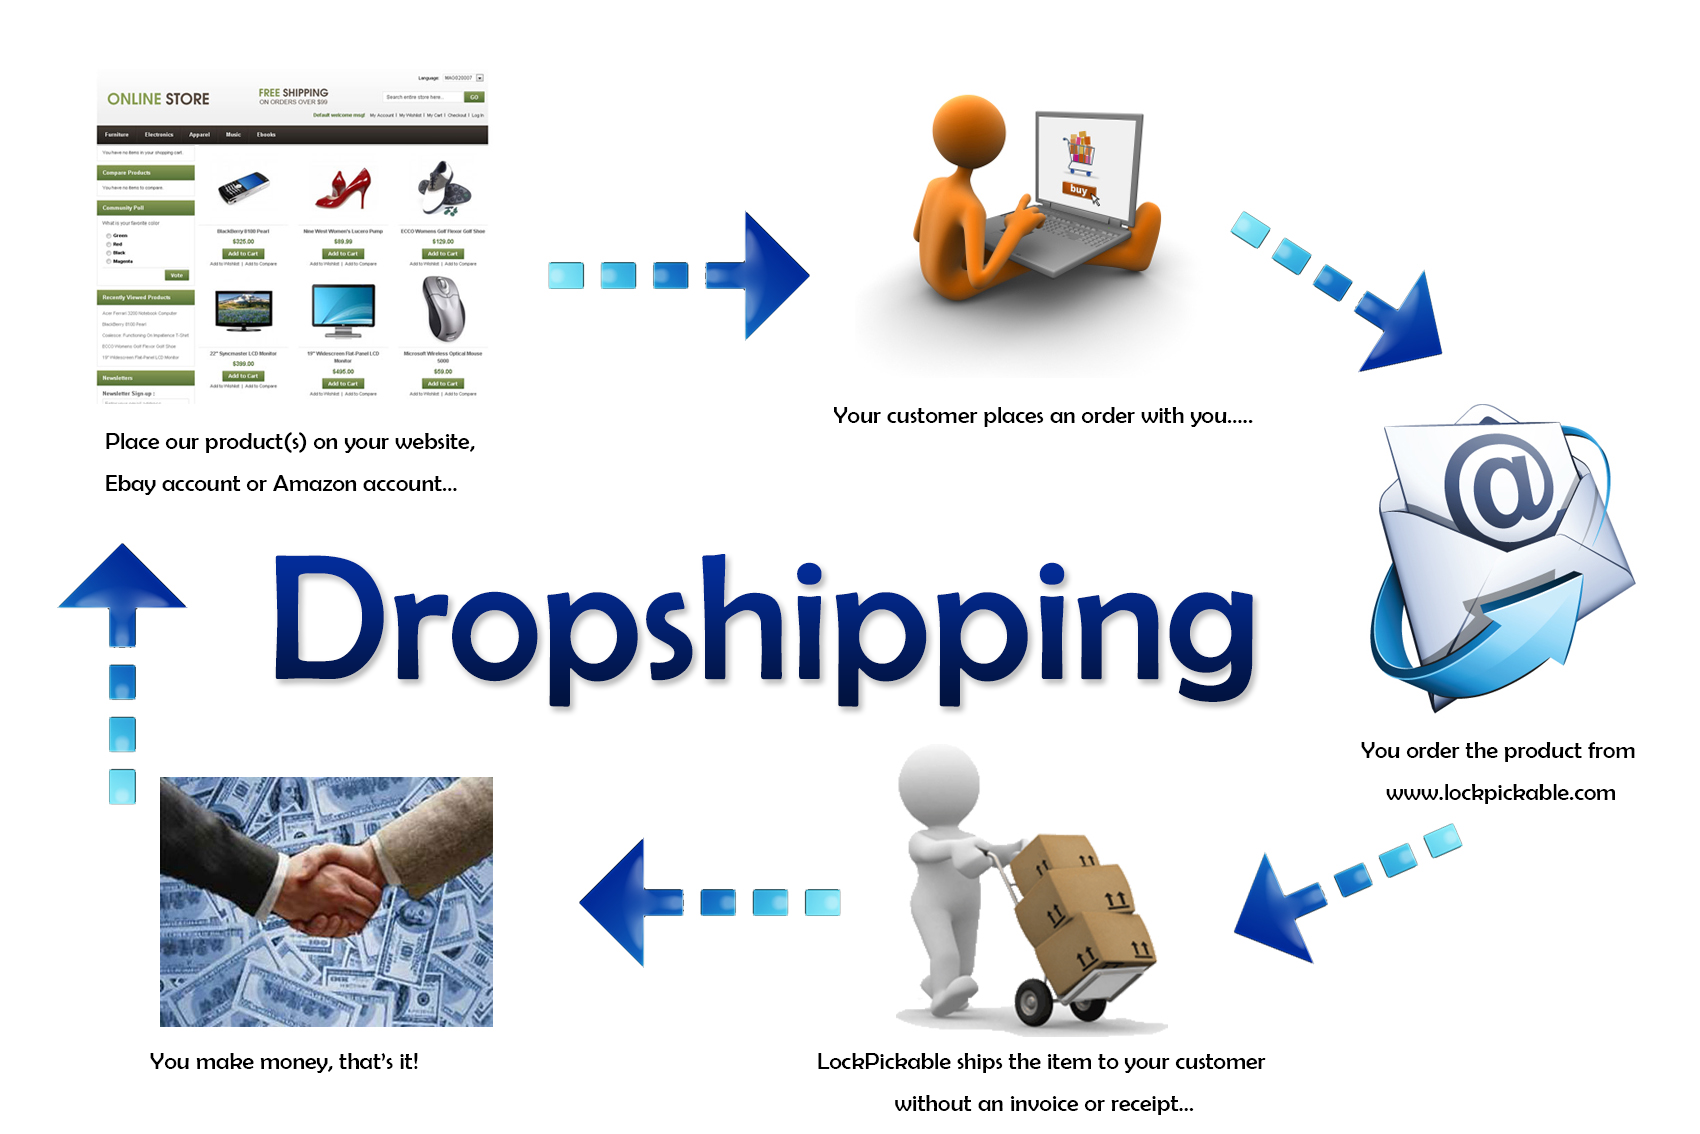 Dropshipping – LockPickable